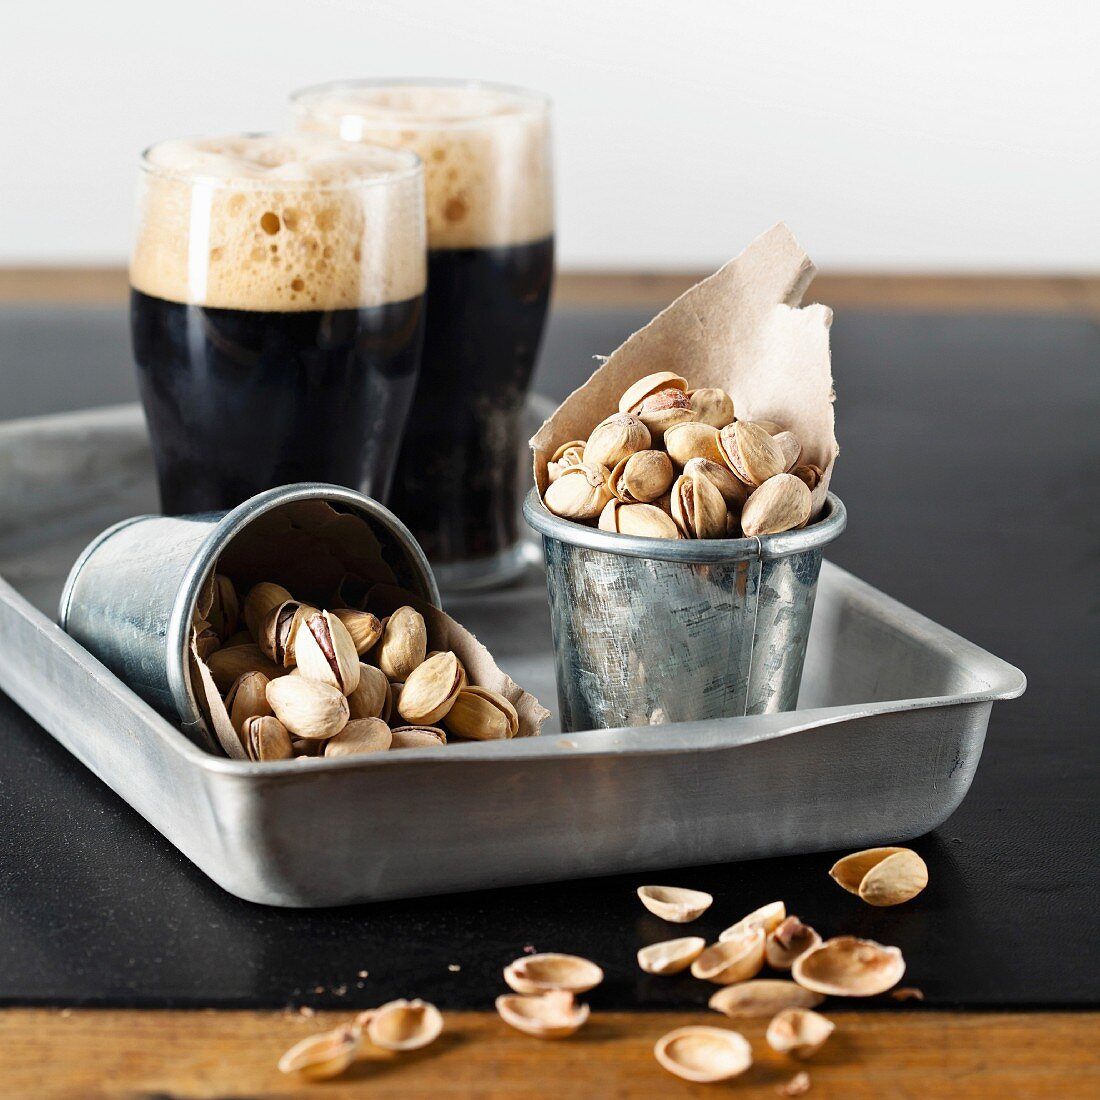 Dark beer and pistachios at textured table